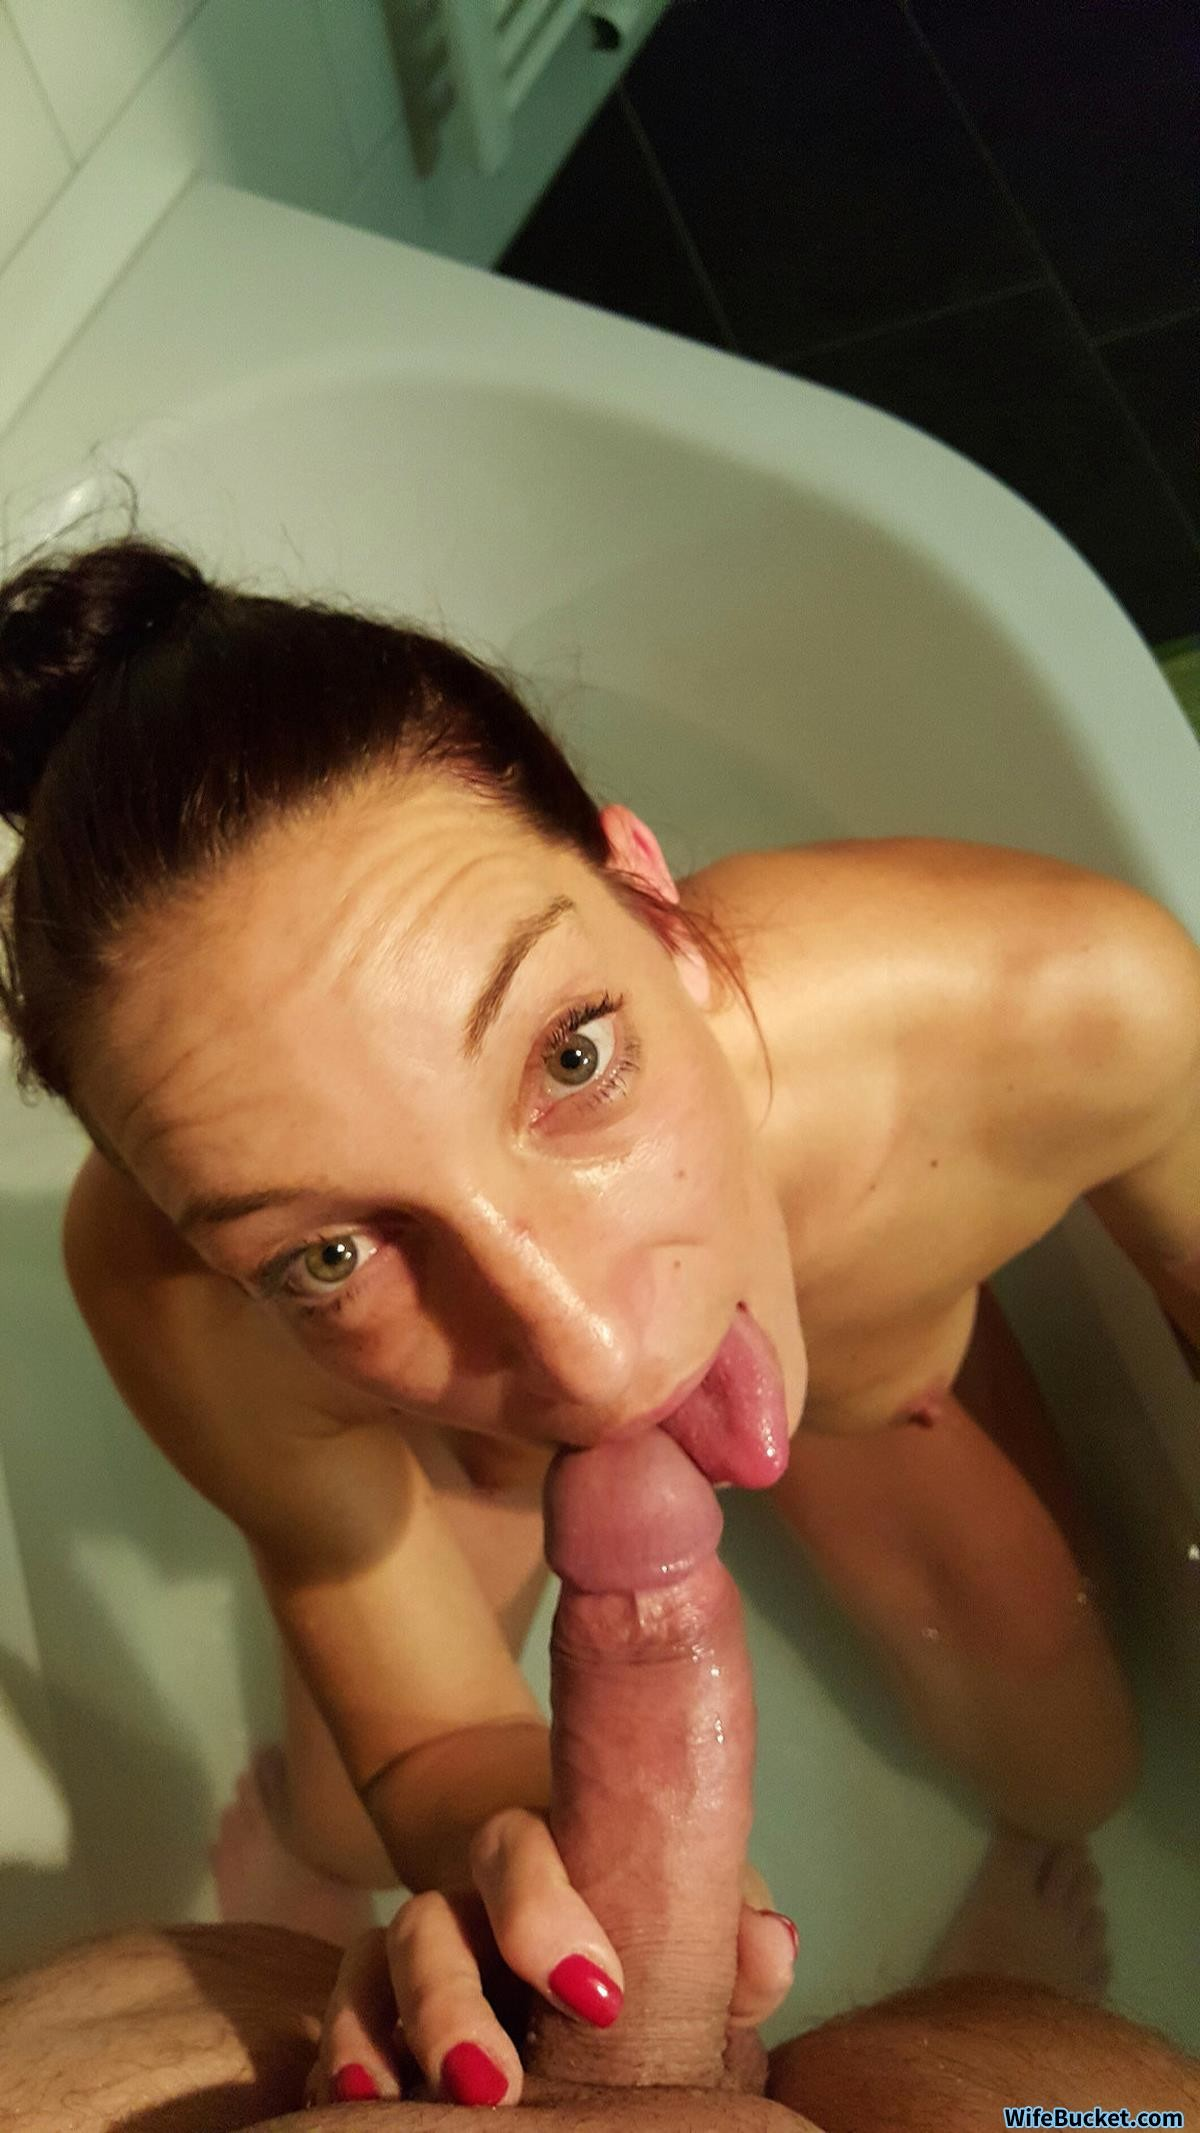 WifeBucket Pics | Home porn with a real MILF